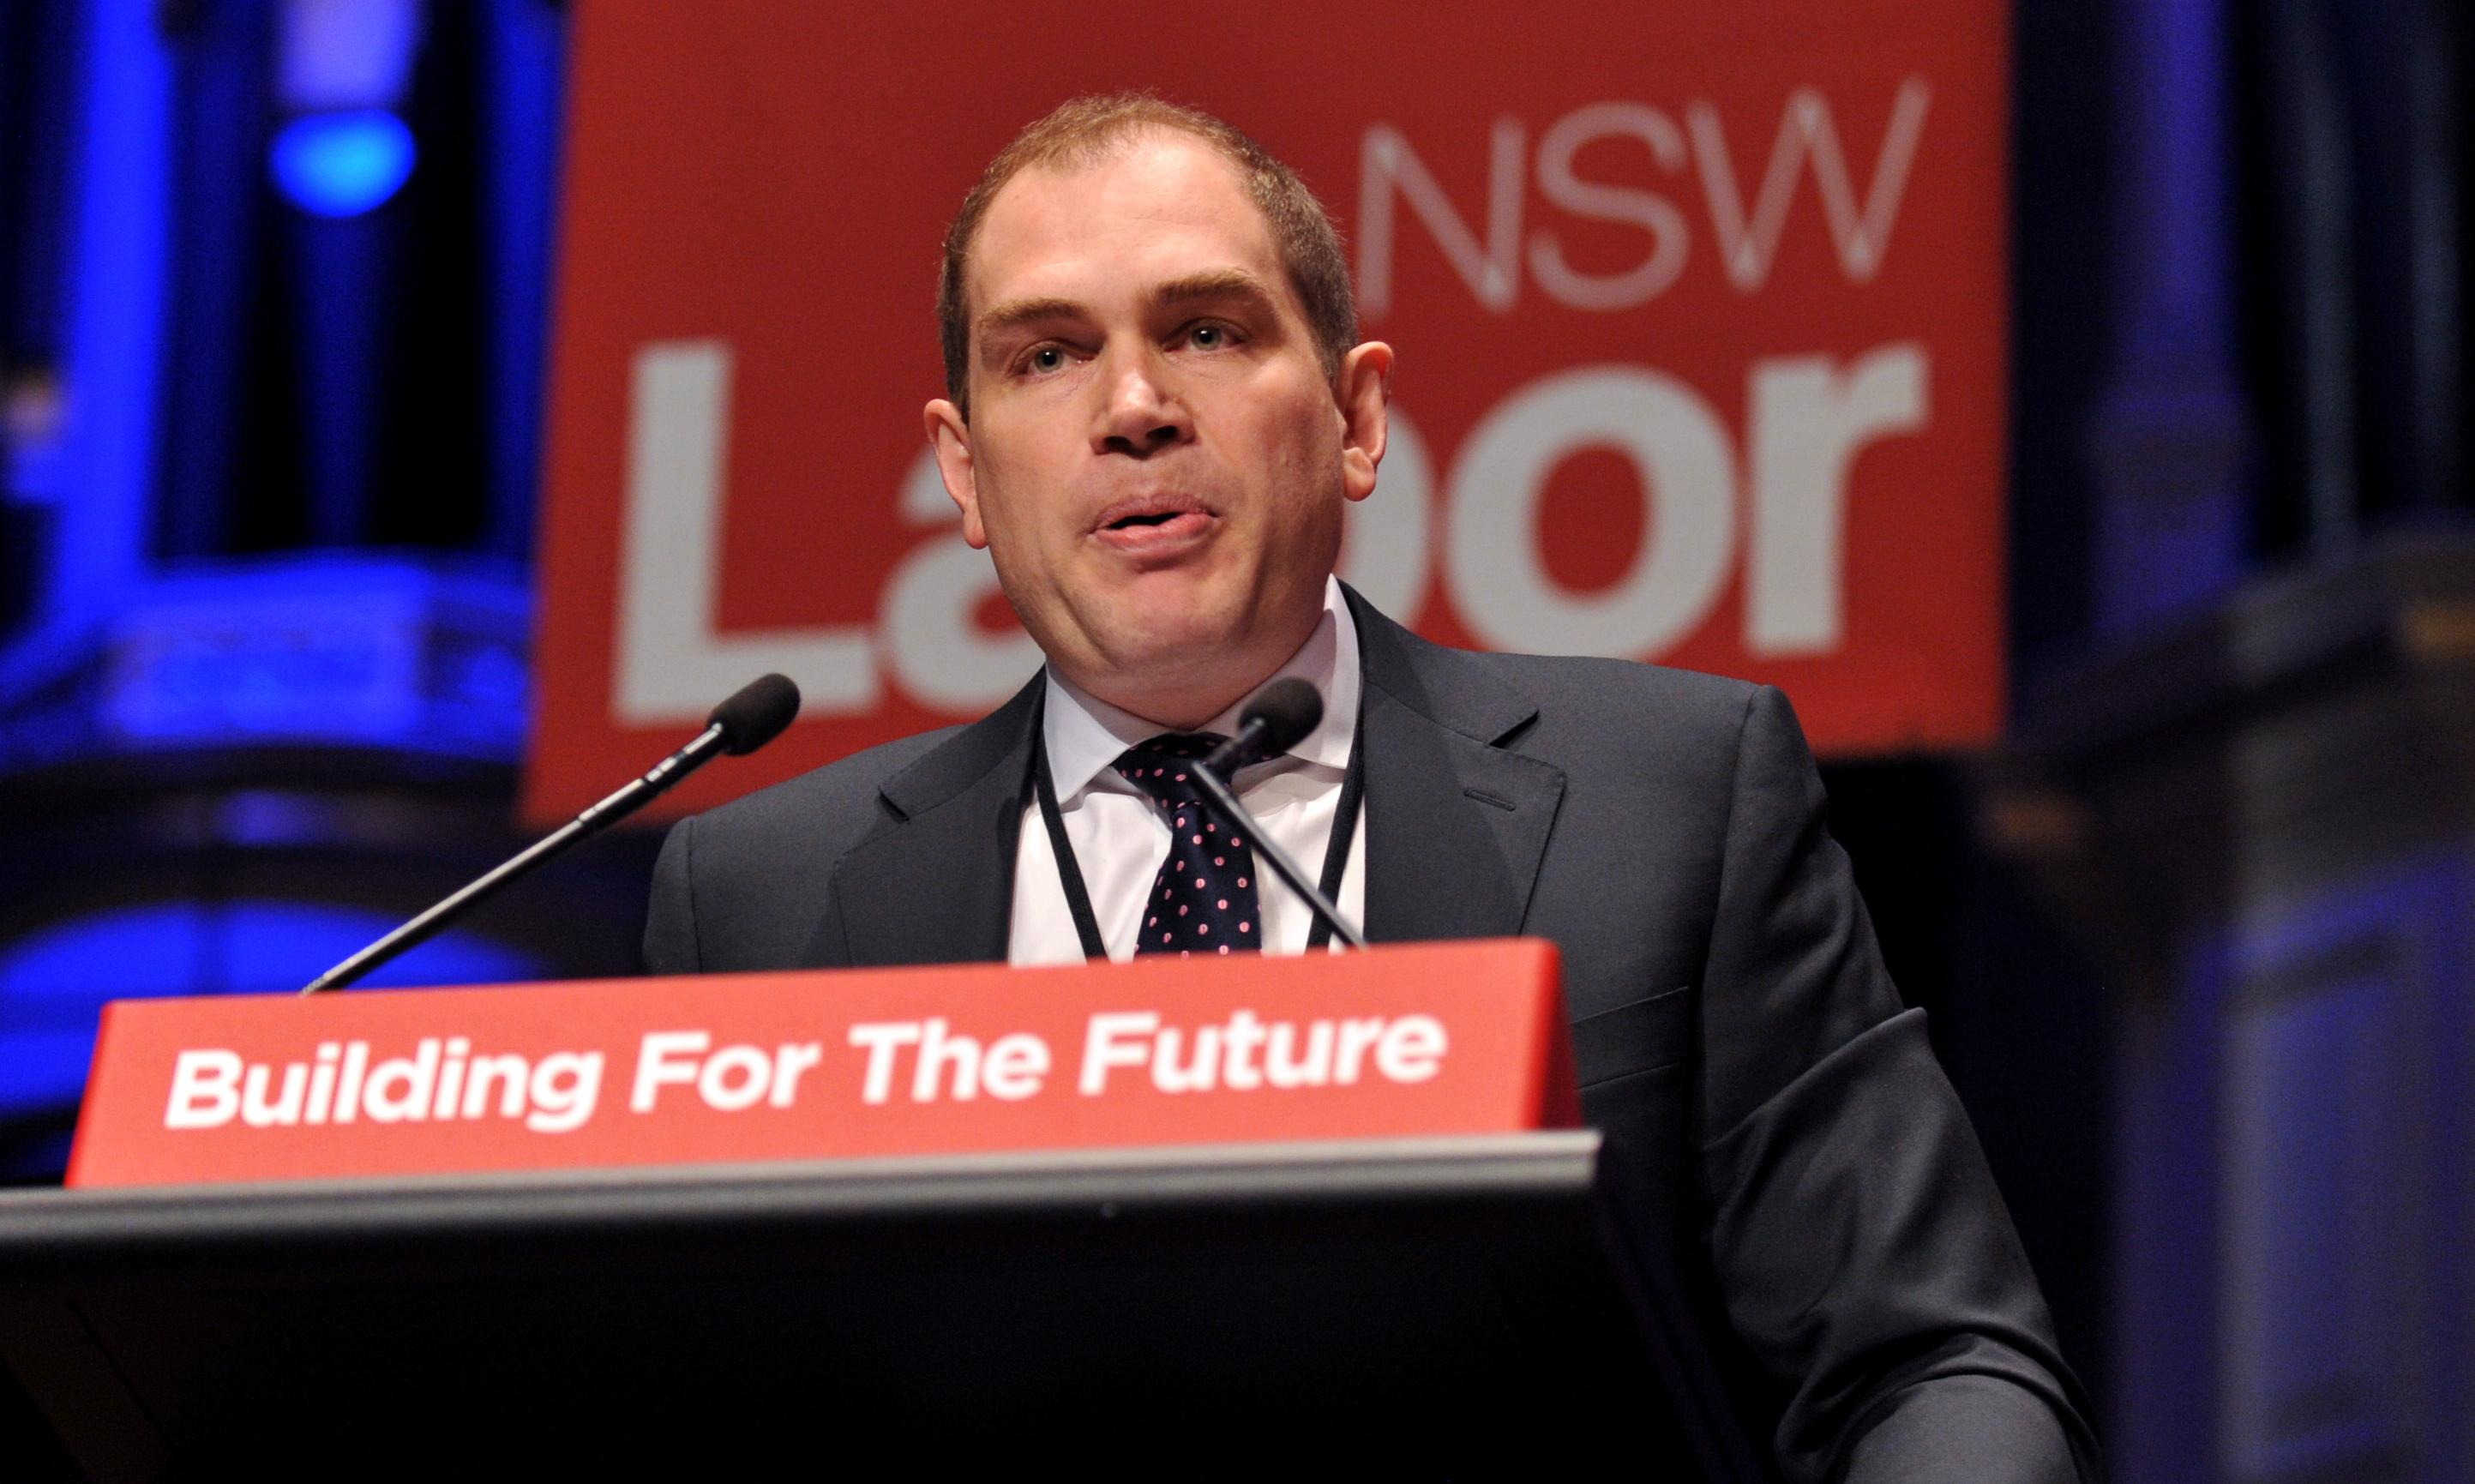 NSW Labor got $100,000 in cash from Chinese billionaire, Icac inquiry told